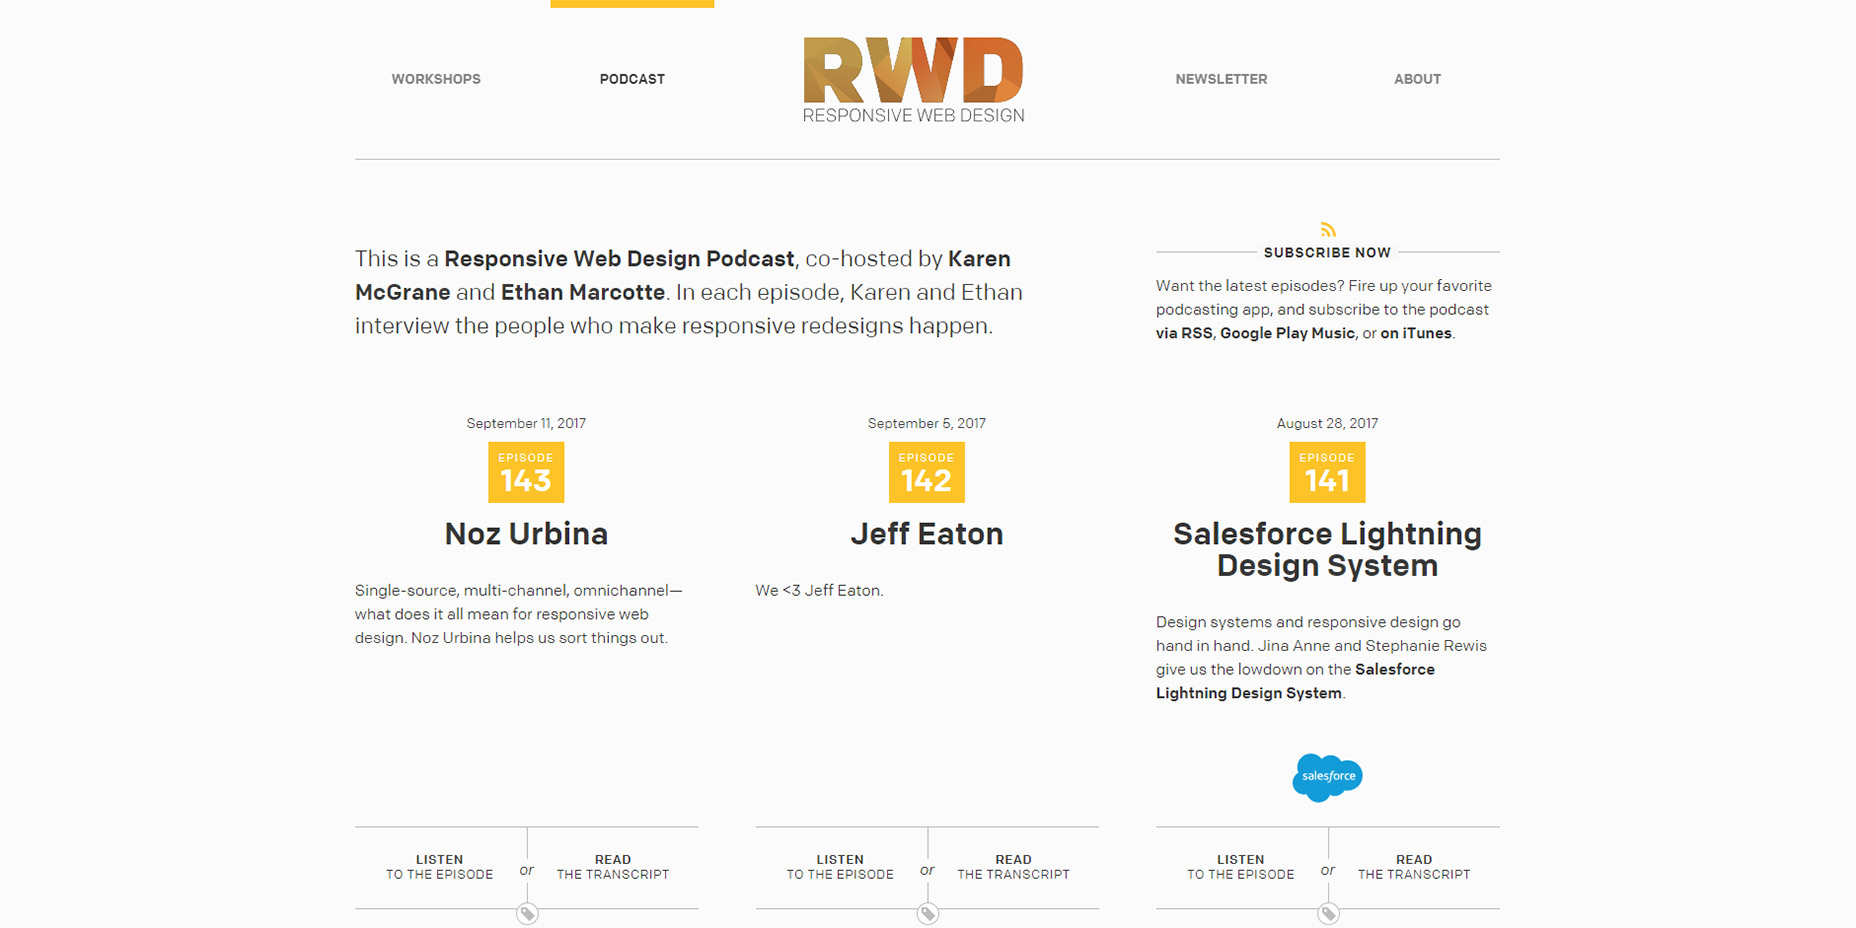 05-responsive-web-design-podcast